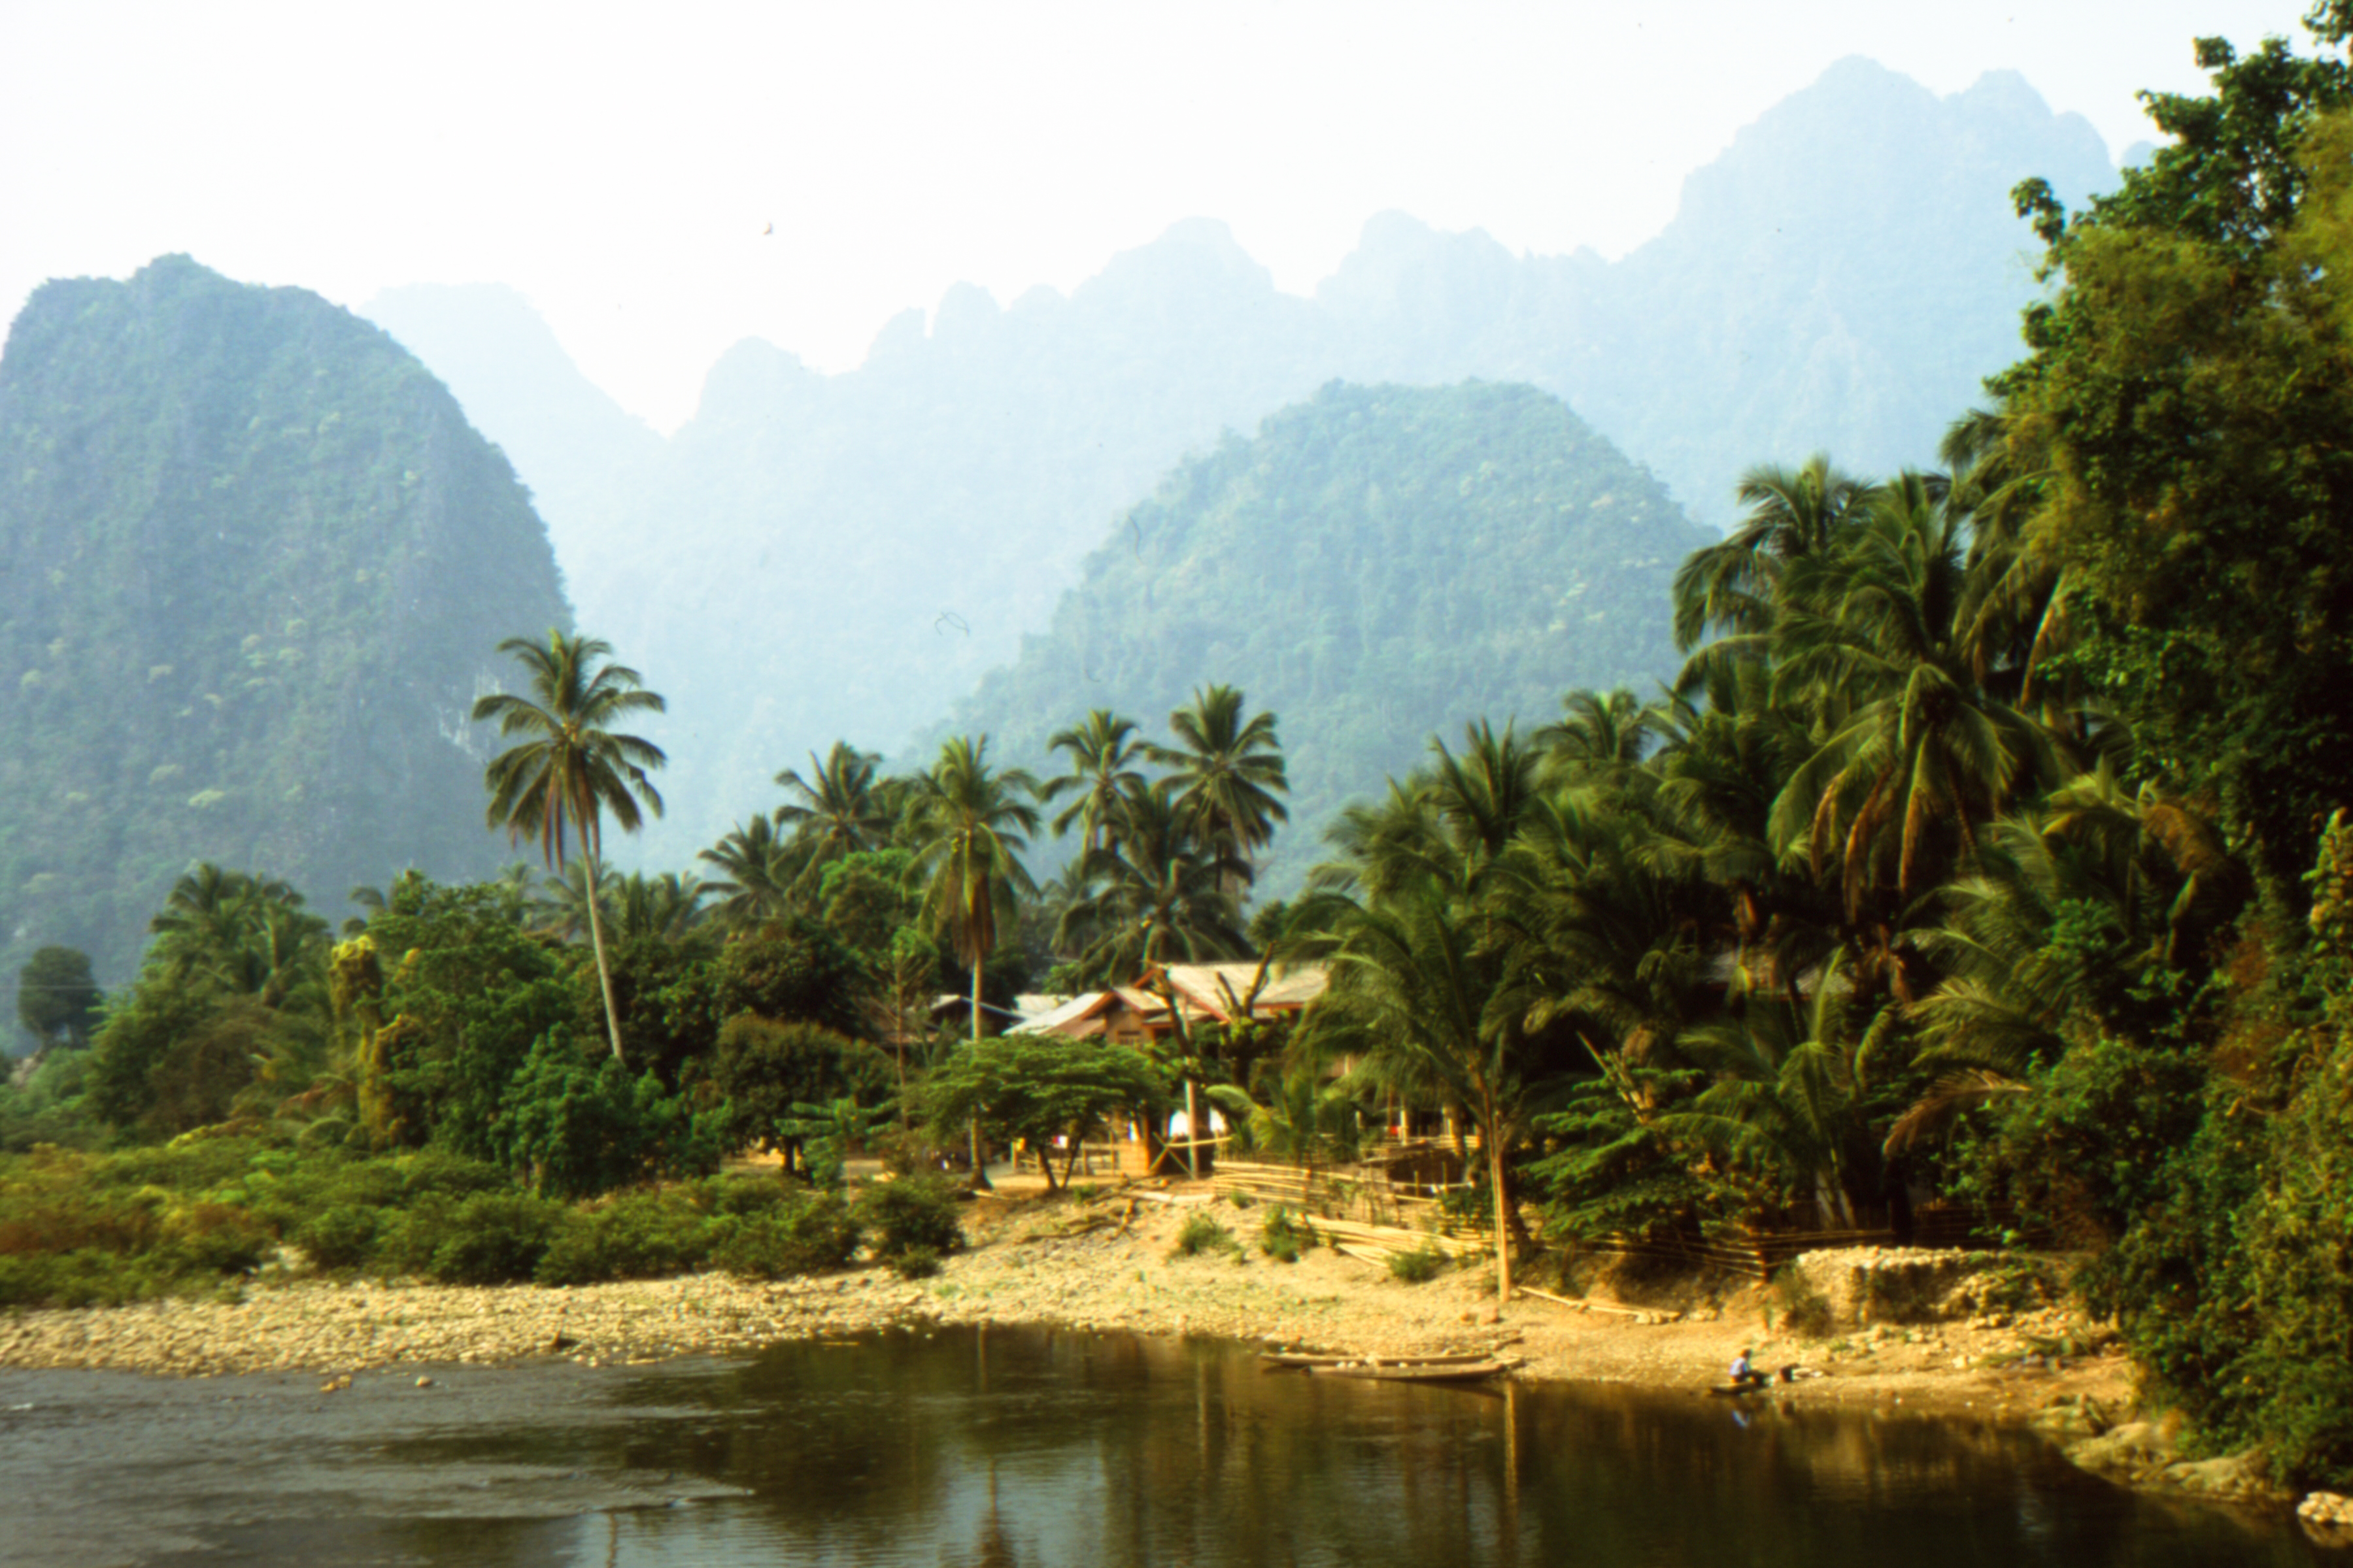 On the way to Vang Vieng, Laos. Photo © Mark Mauchline.